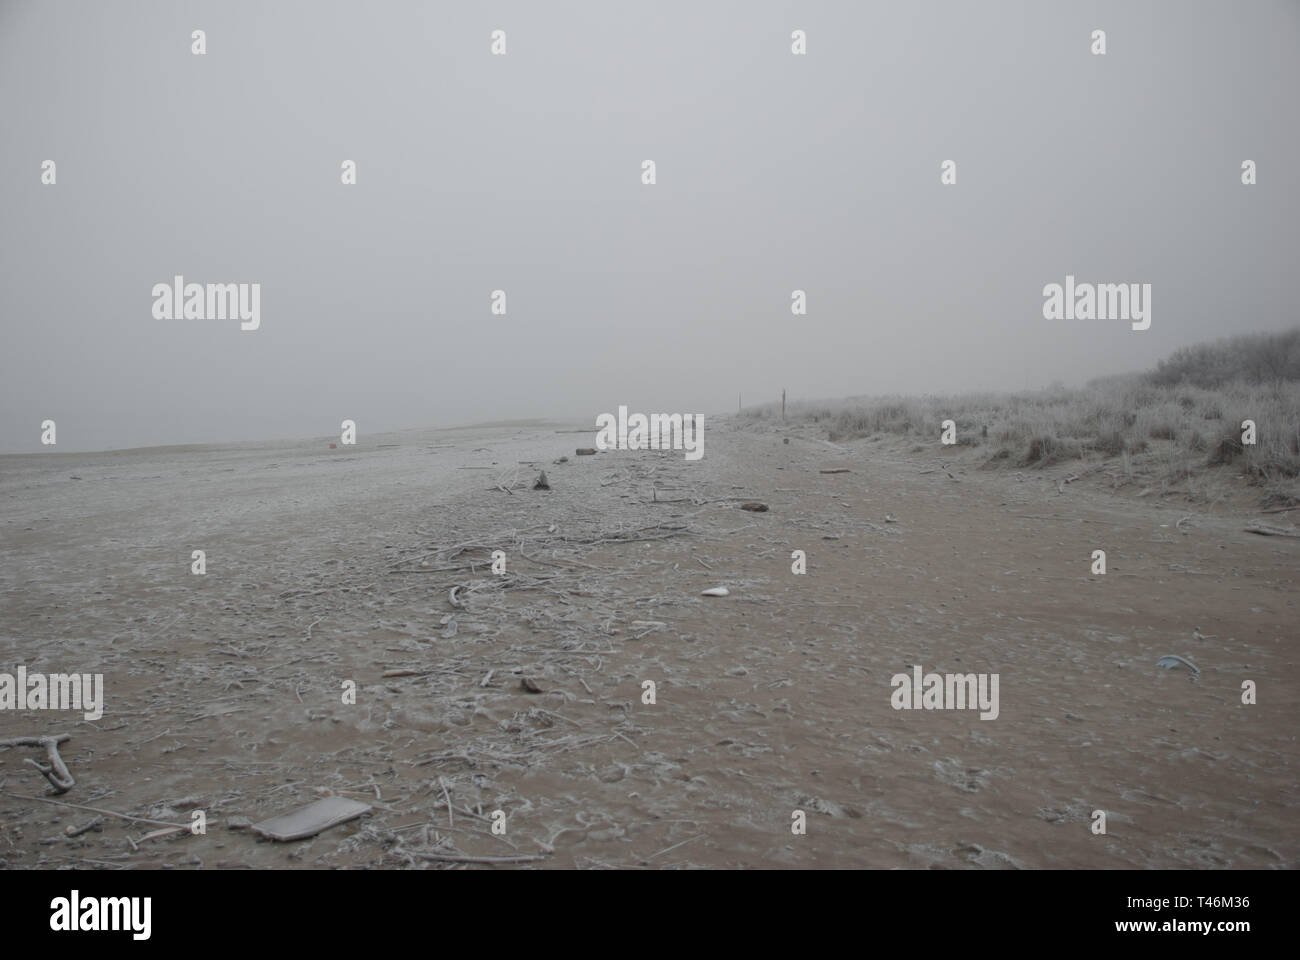 Beach in winter season - Stock Image